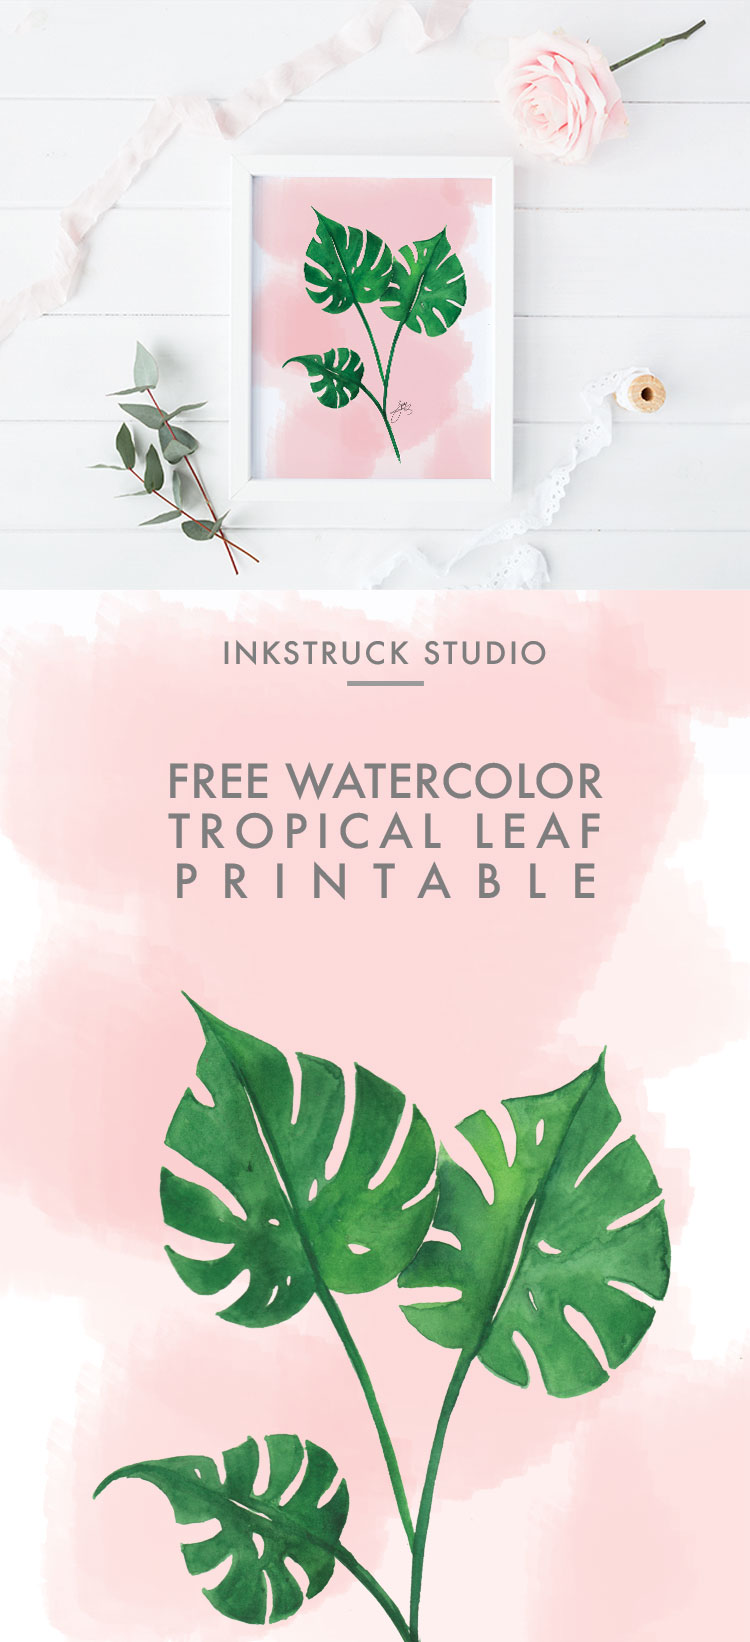 Free Watercolor Tropical Leaf Printable Inkstruck Studio Find images of tropical leaves. free watercolor tropical leaf printable inkstruck studio